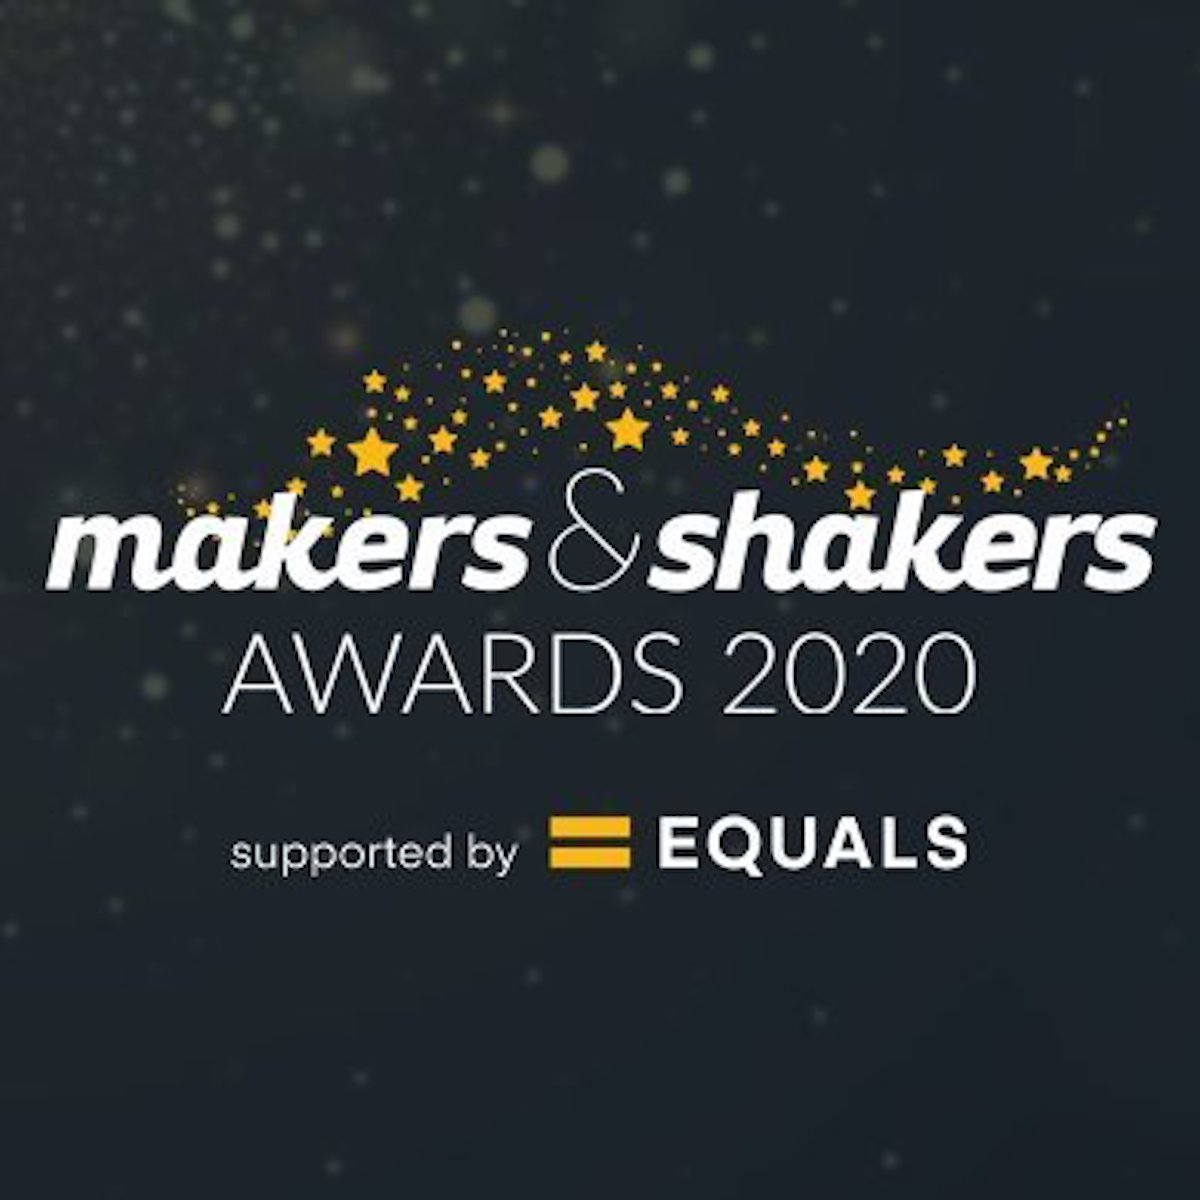 makers & shakers awards